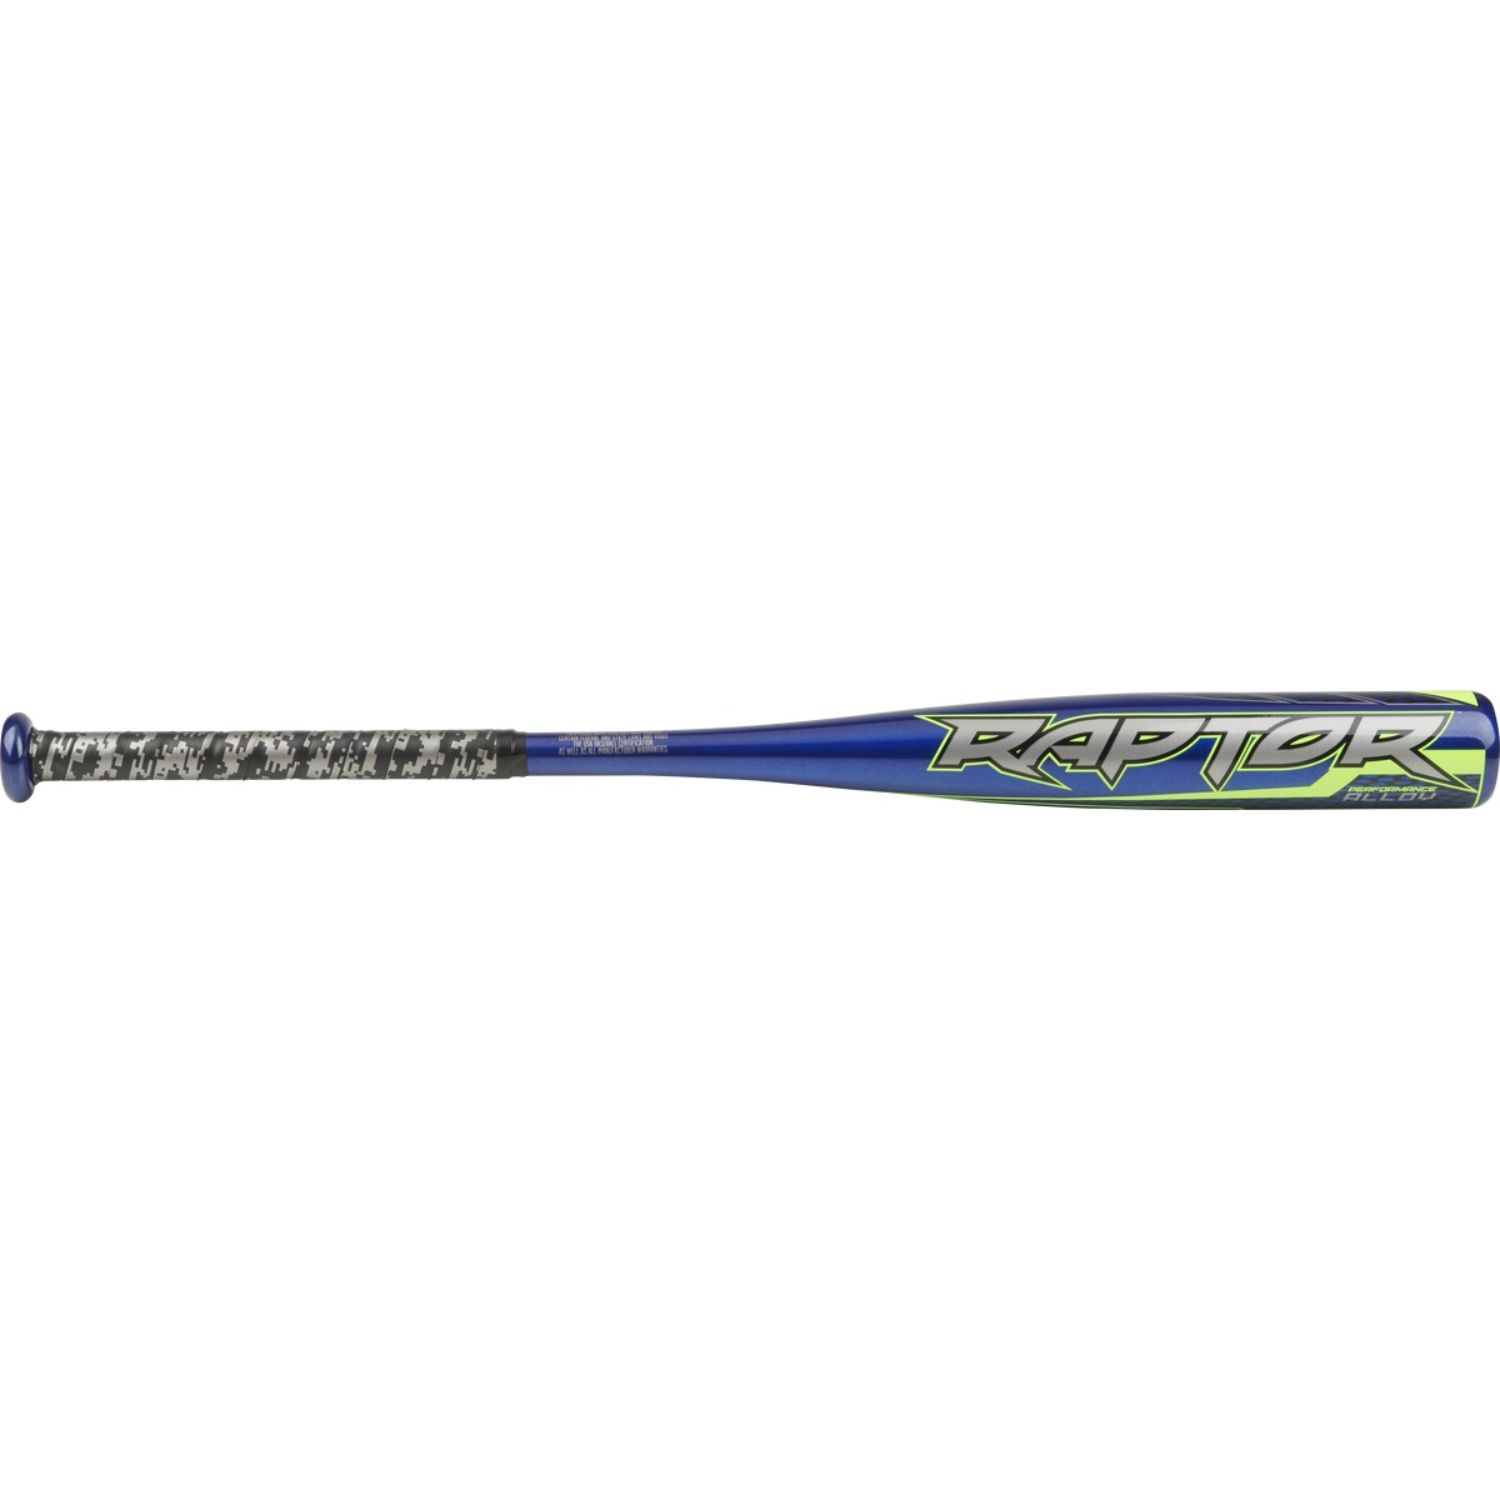 Rawlings 2020 Raptor 28 in 18 oz Youth USA Bat -10